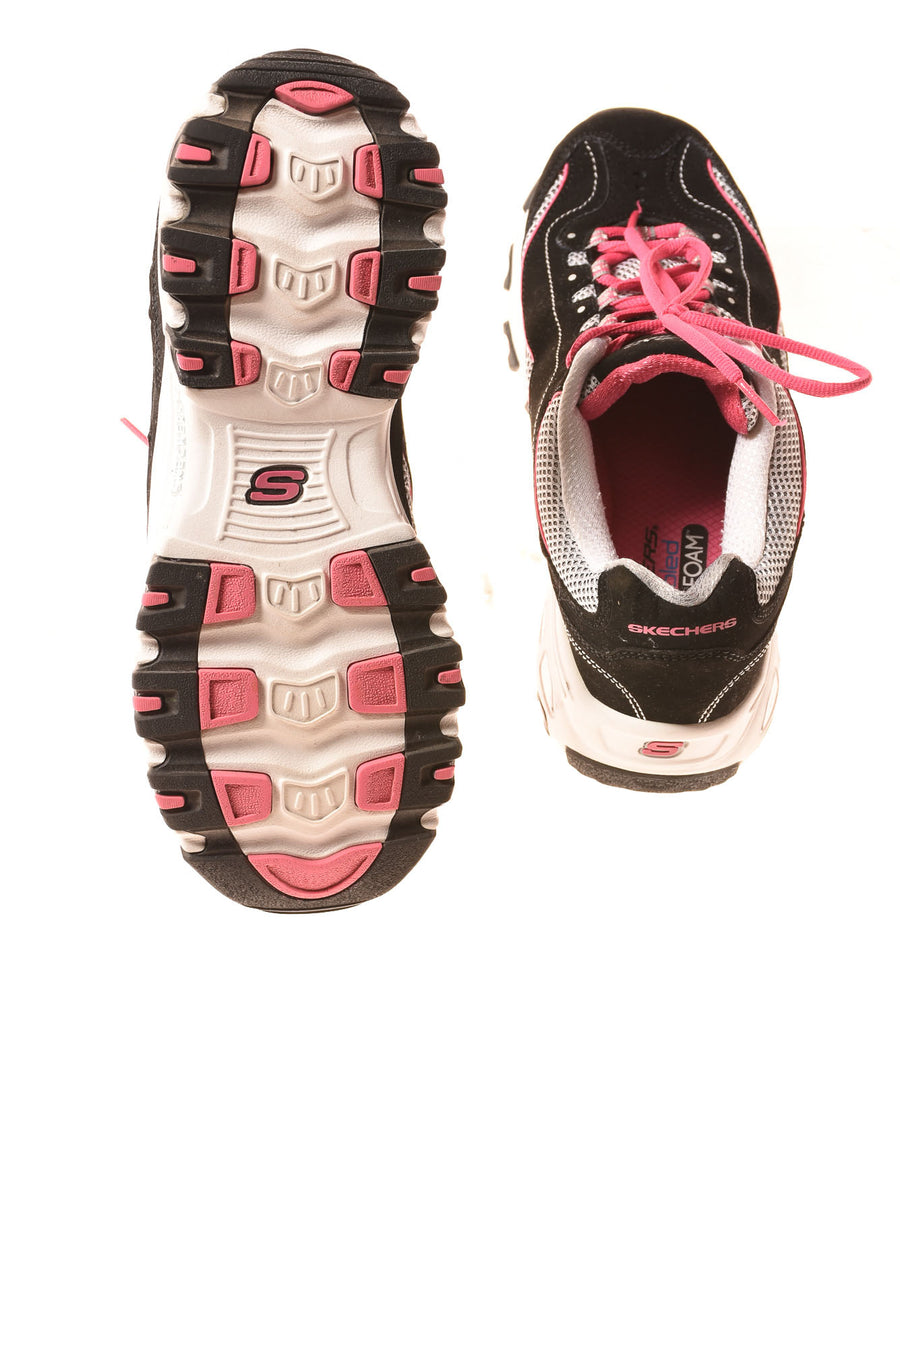 USED Skechers Women's Shoes 10 Black & Pink